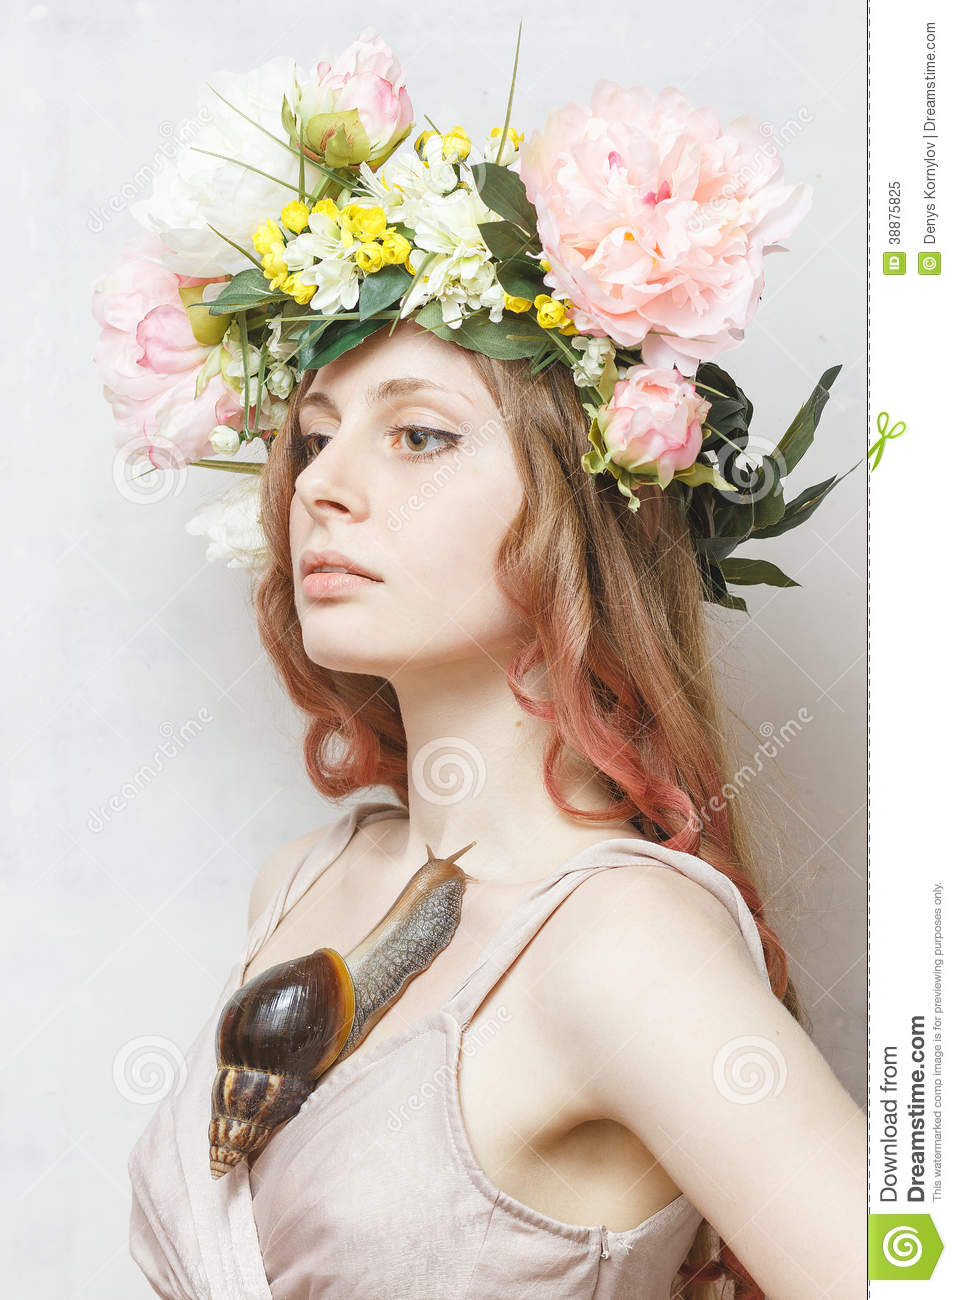 Calm Pretty Girl With Snail And Flower Crown Stock Photo 38875825